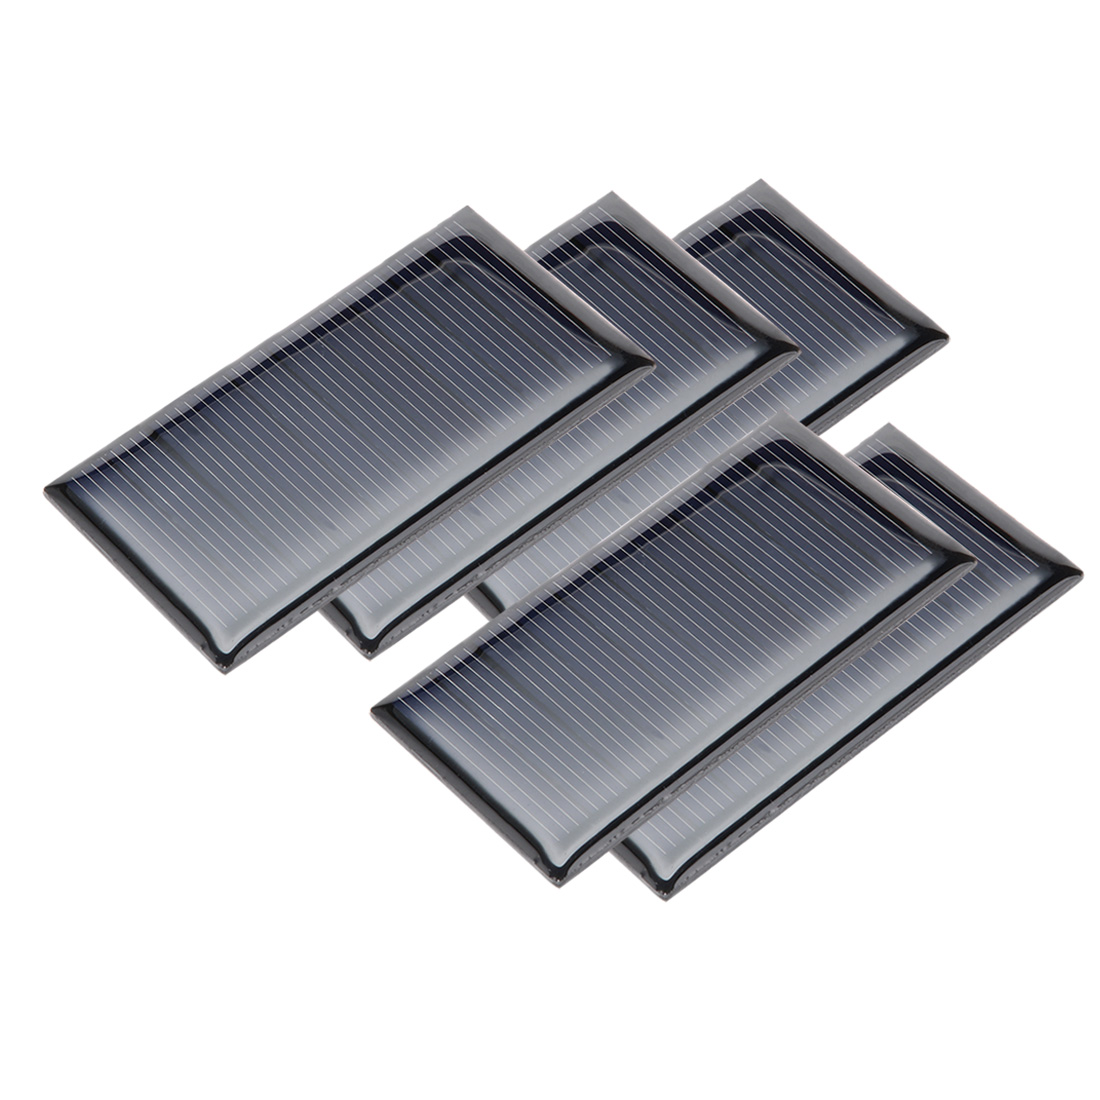 5Pcs 5V 60mA Poly Mini Solar Panel Module DIY for Phone Toys Charger 67.5mmx35mm